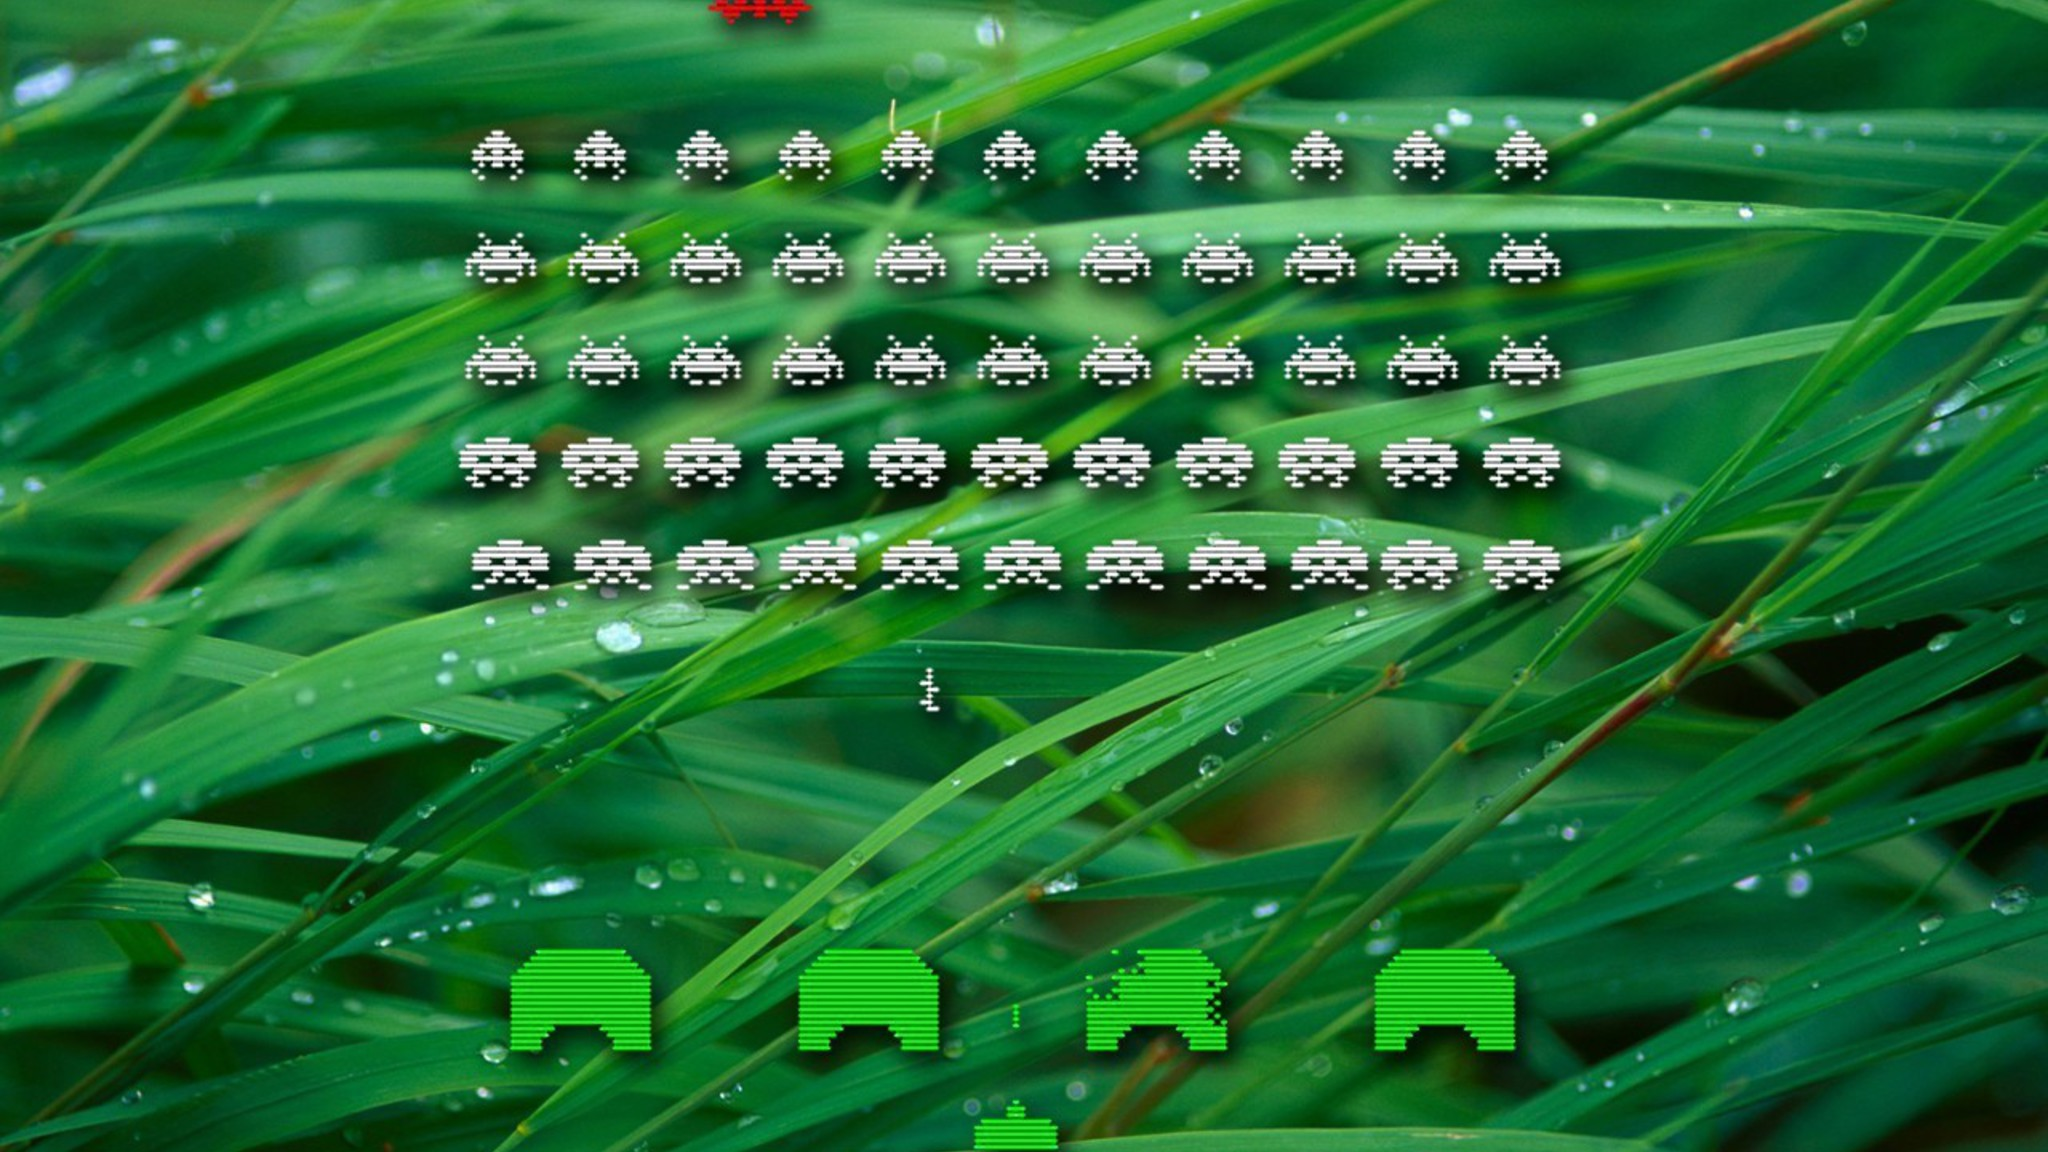 Grass space invaders retro games wallpaper | AllWallpaper ...